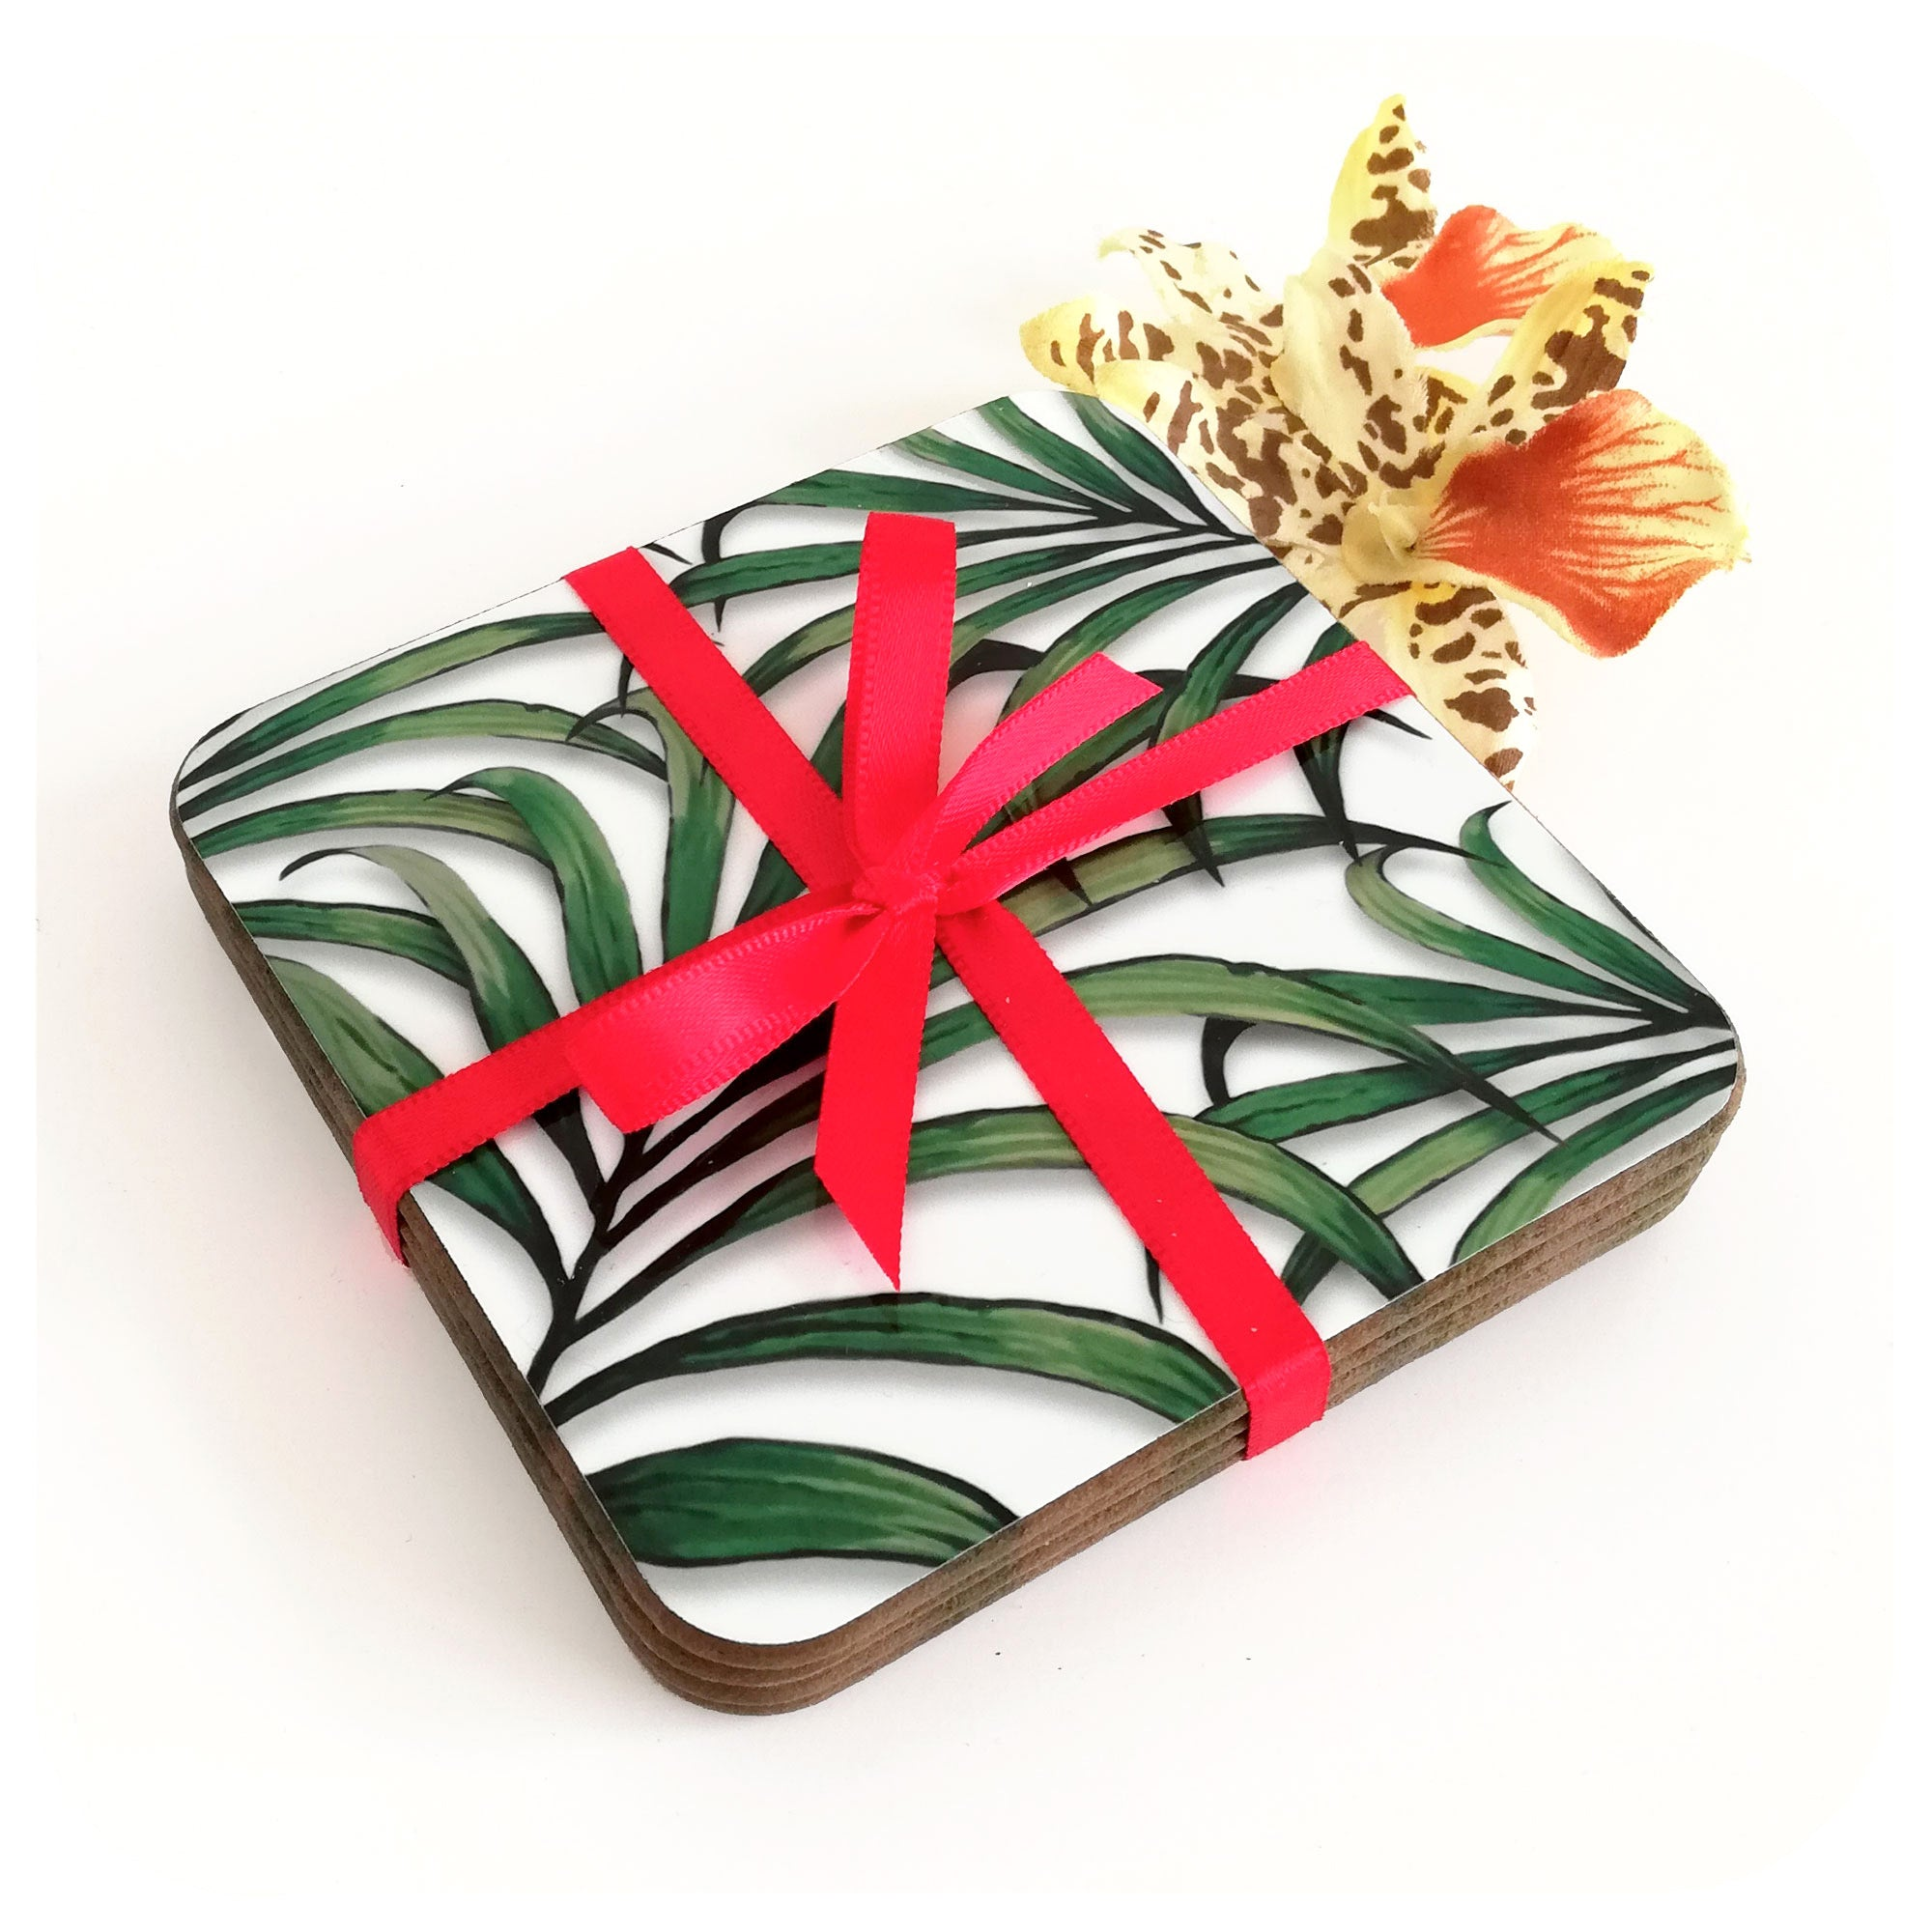 Palm Leaf Print Coasters, tied with red ribbon | The Inkabilly Emporium